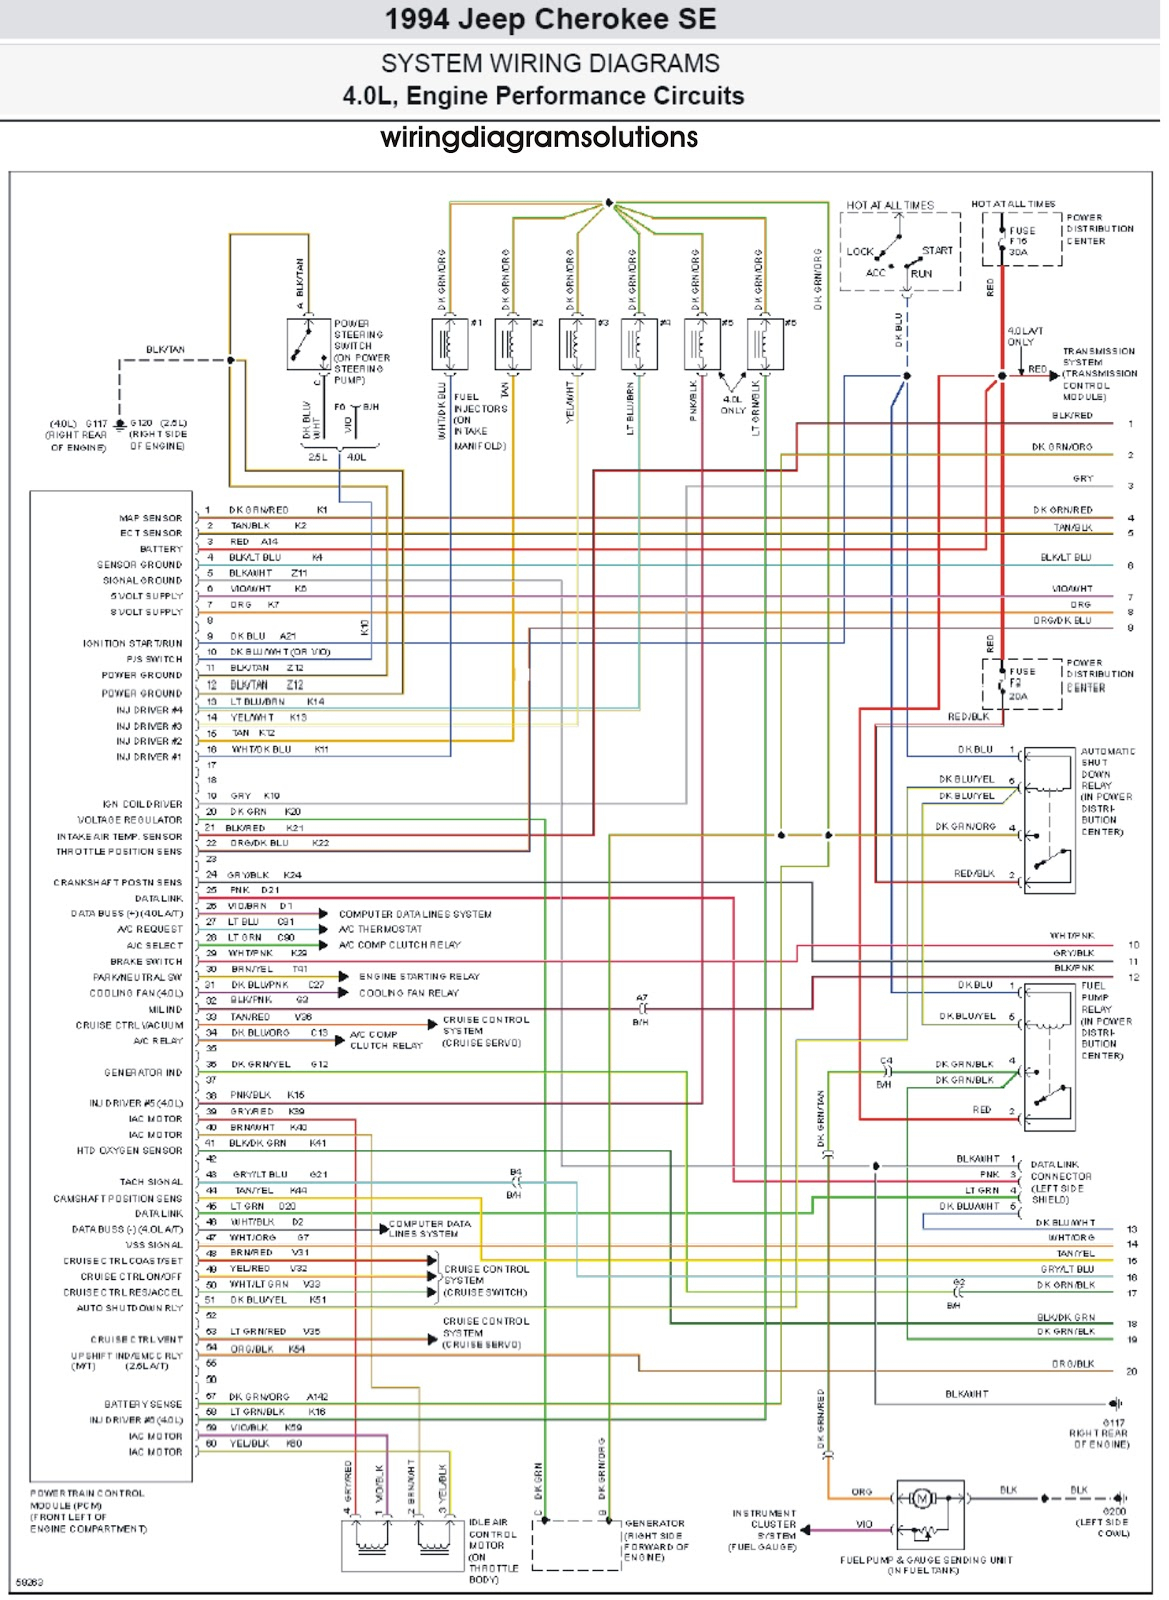 2015 Jeep Grand Cherokee Radio Wiring Diagram New 95 Stereo - Hbphelp - 1995 Jeep Cherokee Wiring Diagram